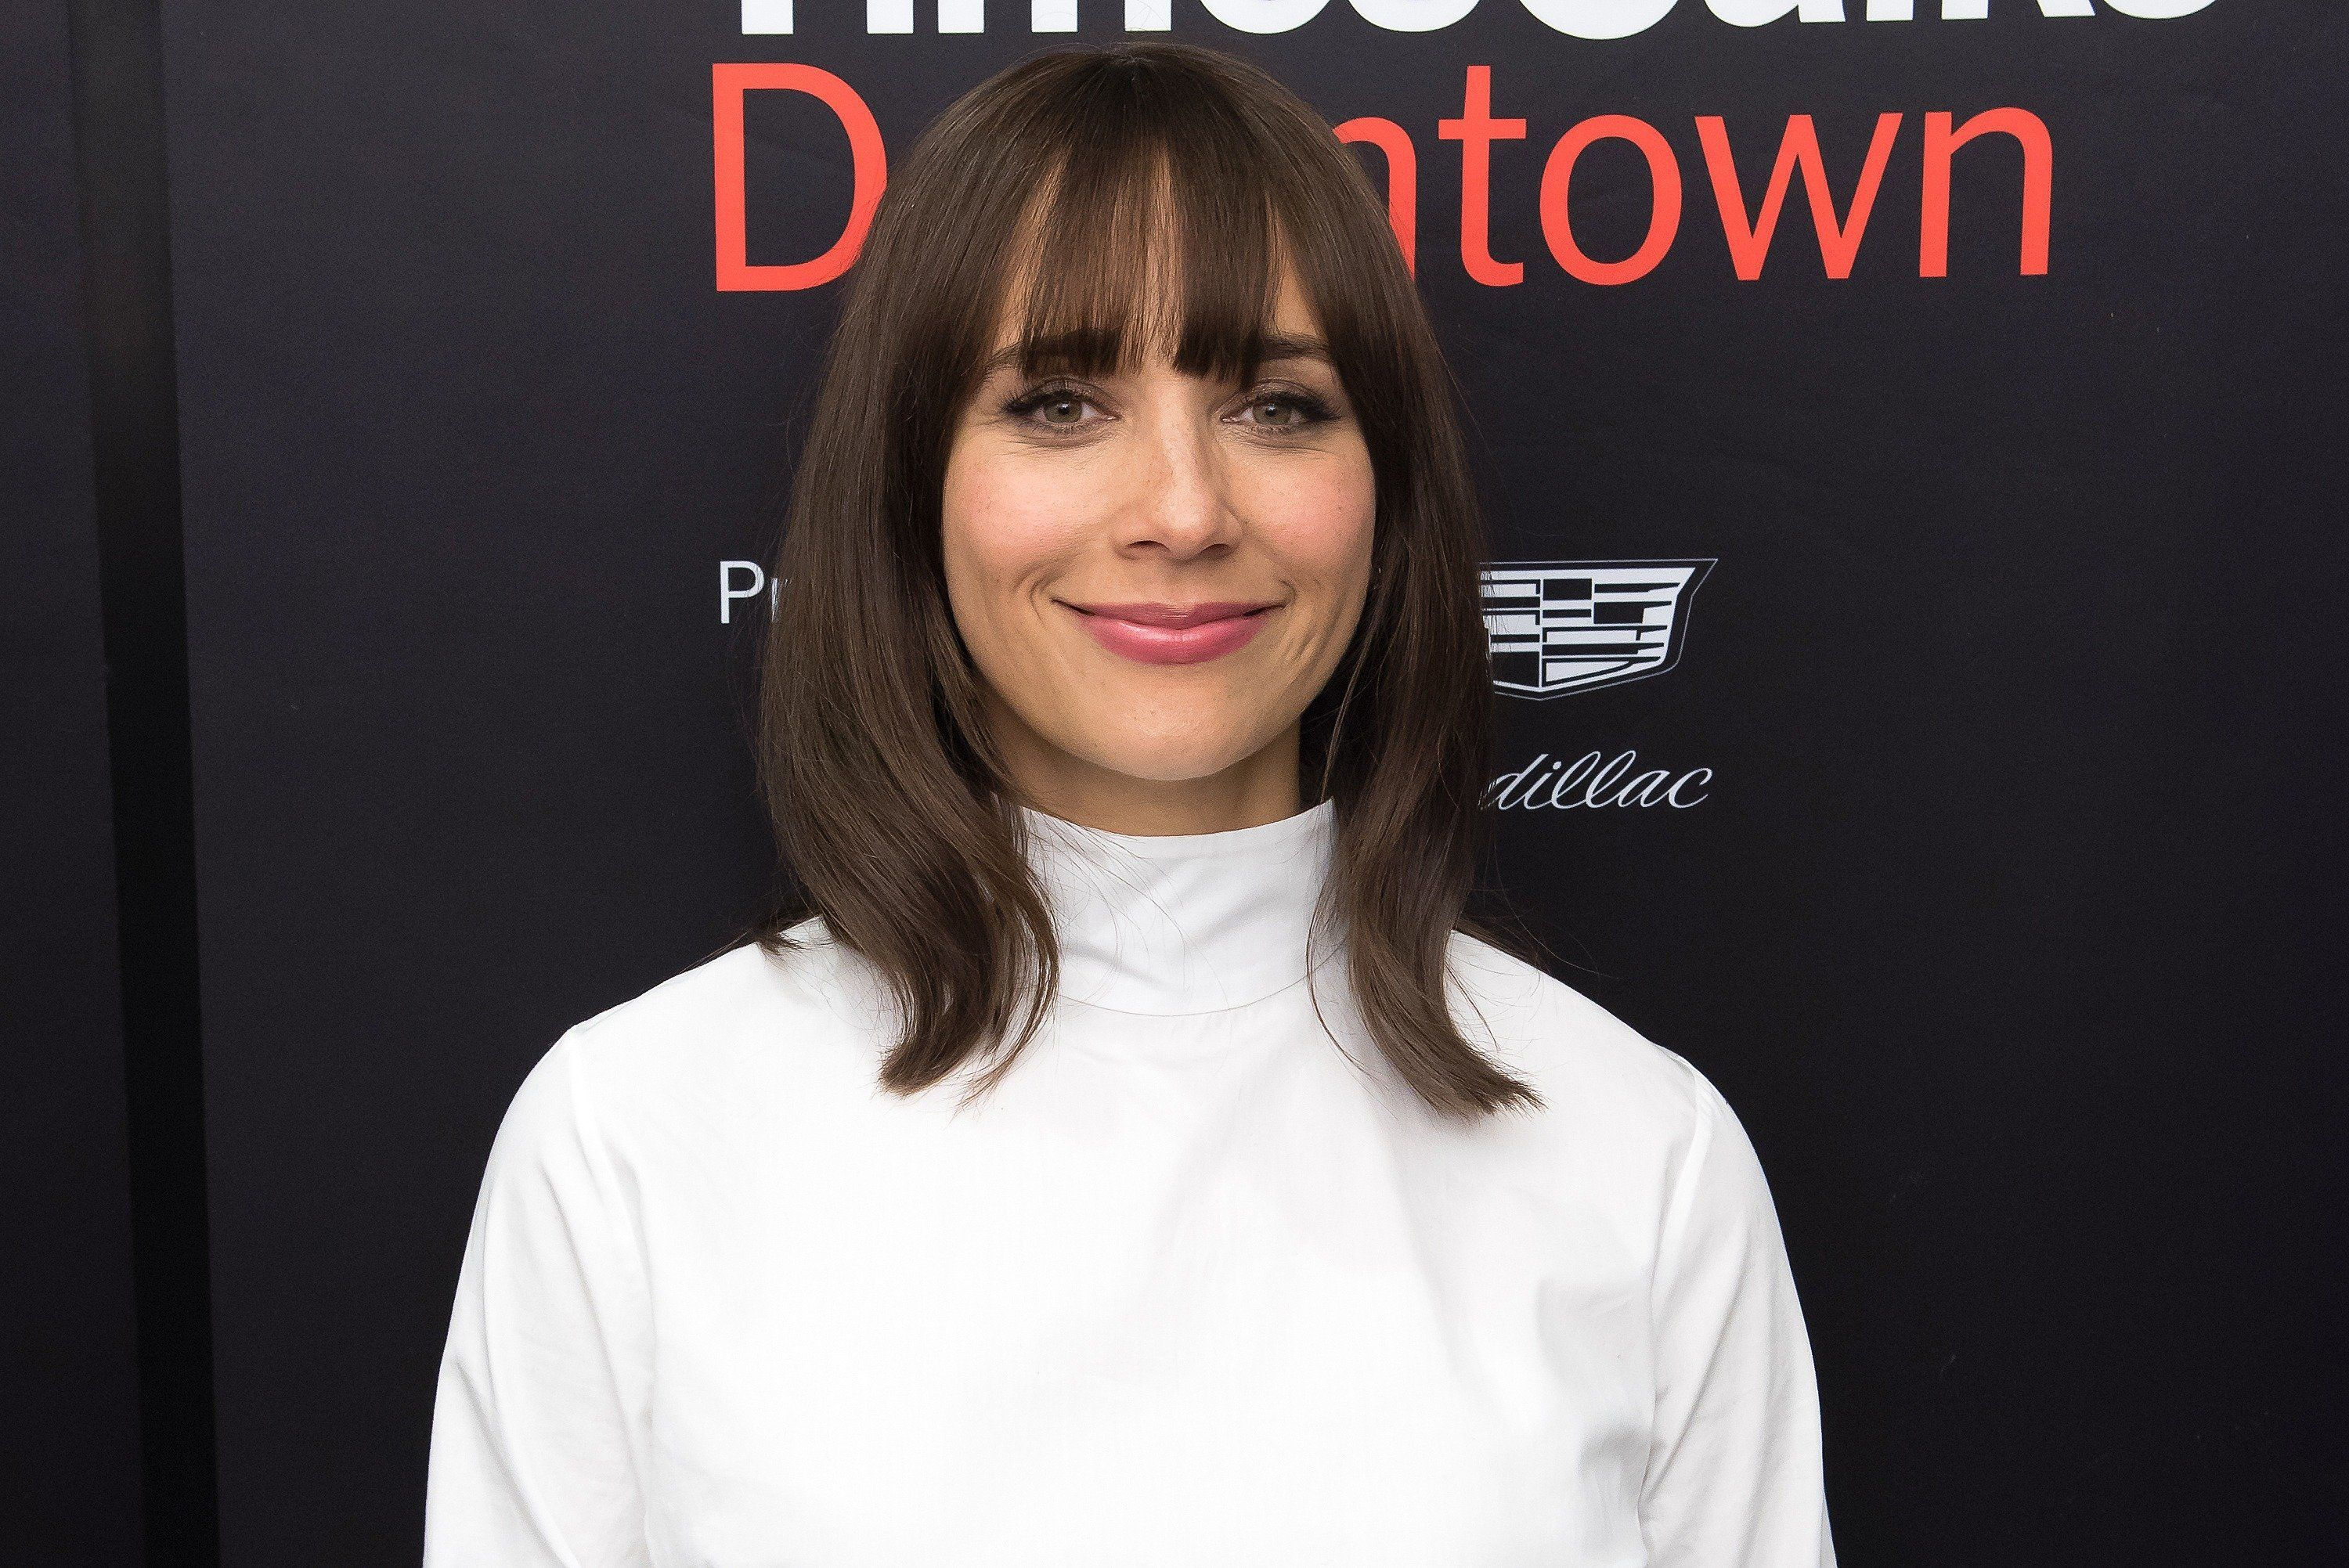 NEW YORK, NY - APRIL 19:  Rashida Jones attends TimesTalks presents Rashida Jones in conversation with Jenna Wortham at Cadillac House on April 19, 2017 in New York City.  (Photo by Mike Pont/WireImage)